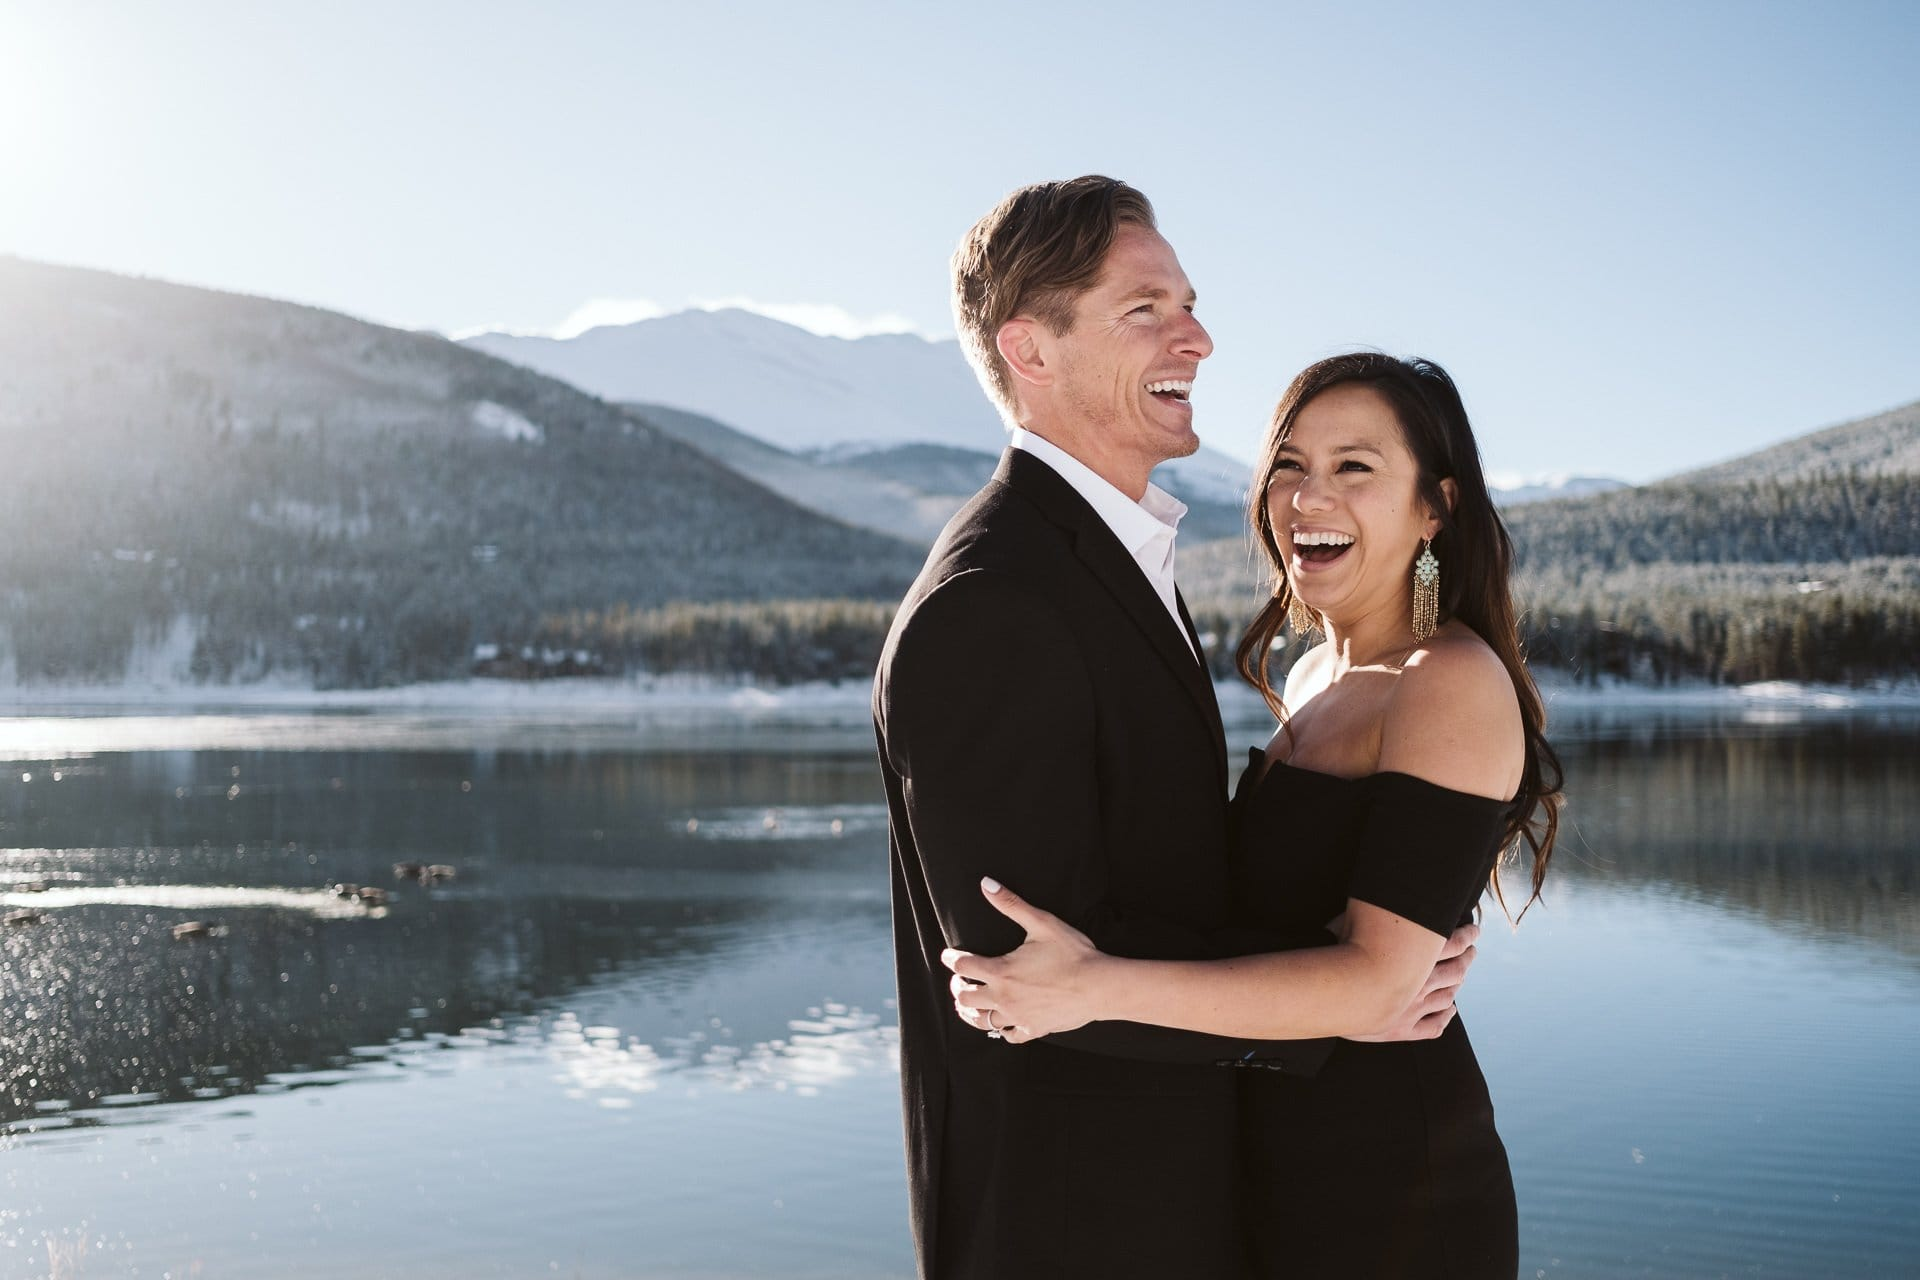 Cassie + Chris' Breckenridge Engagement Session